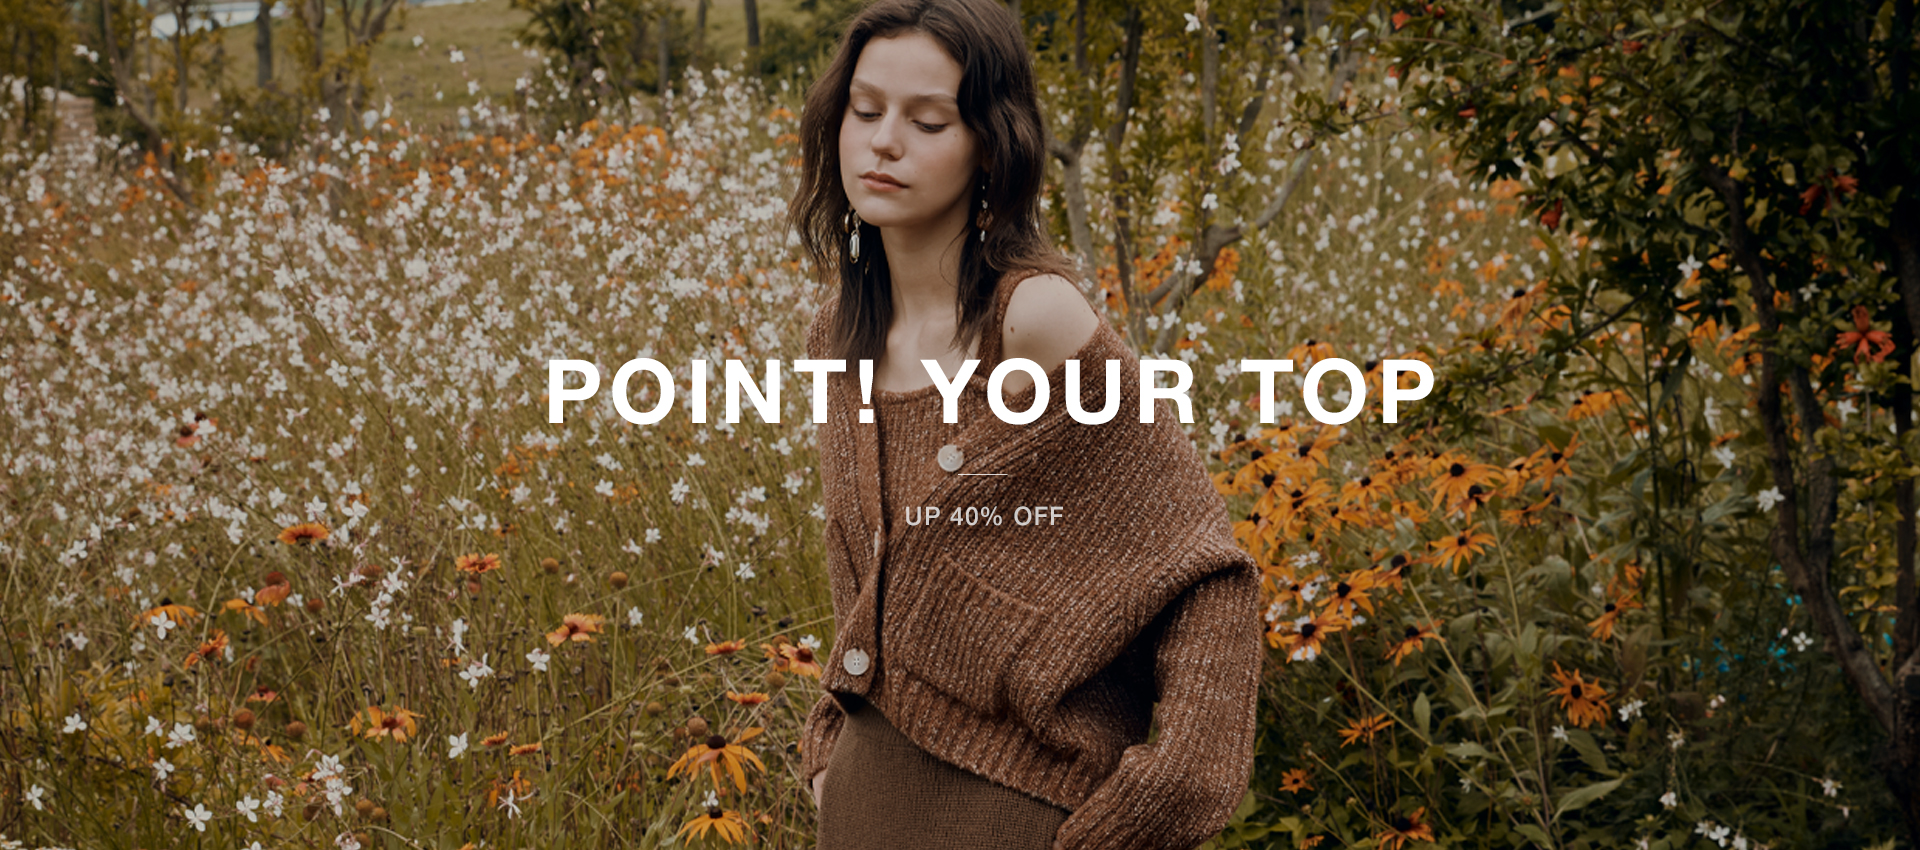 POINT YOUR TOP